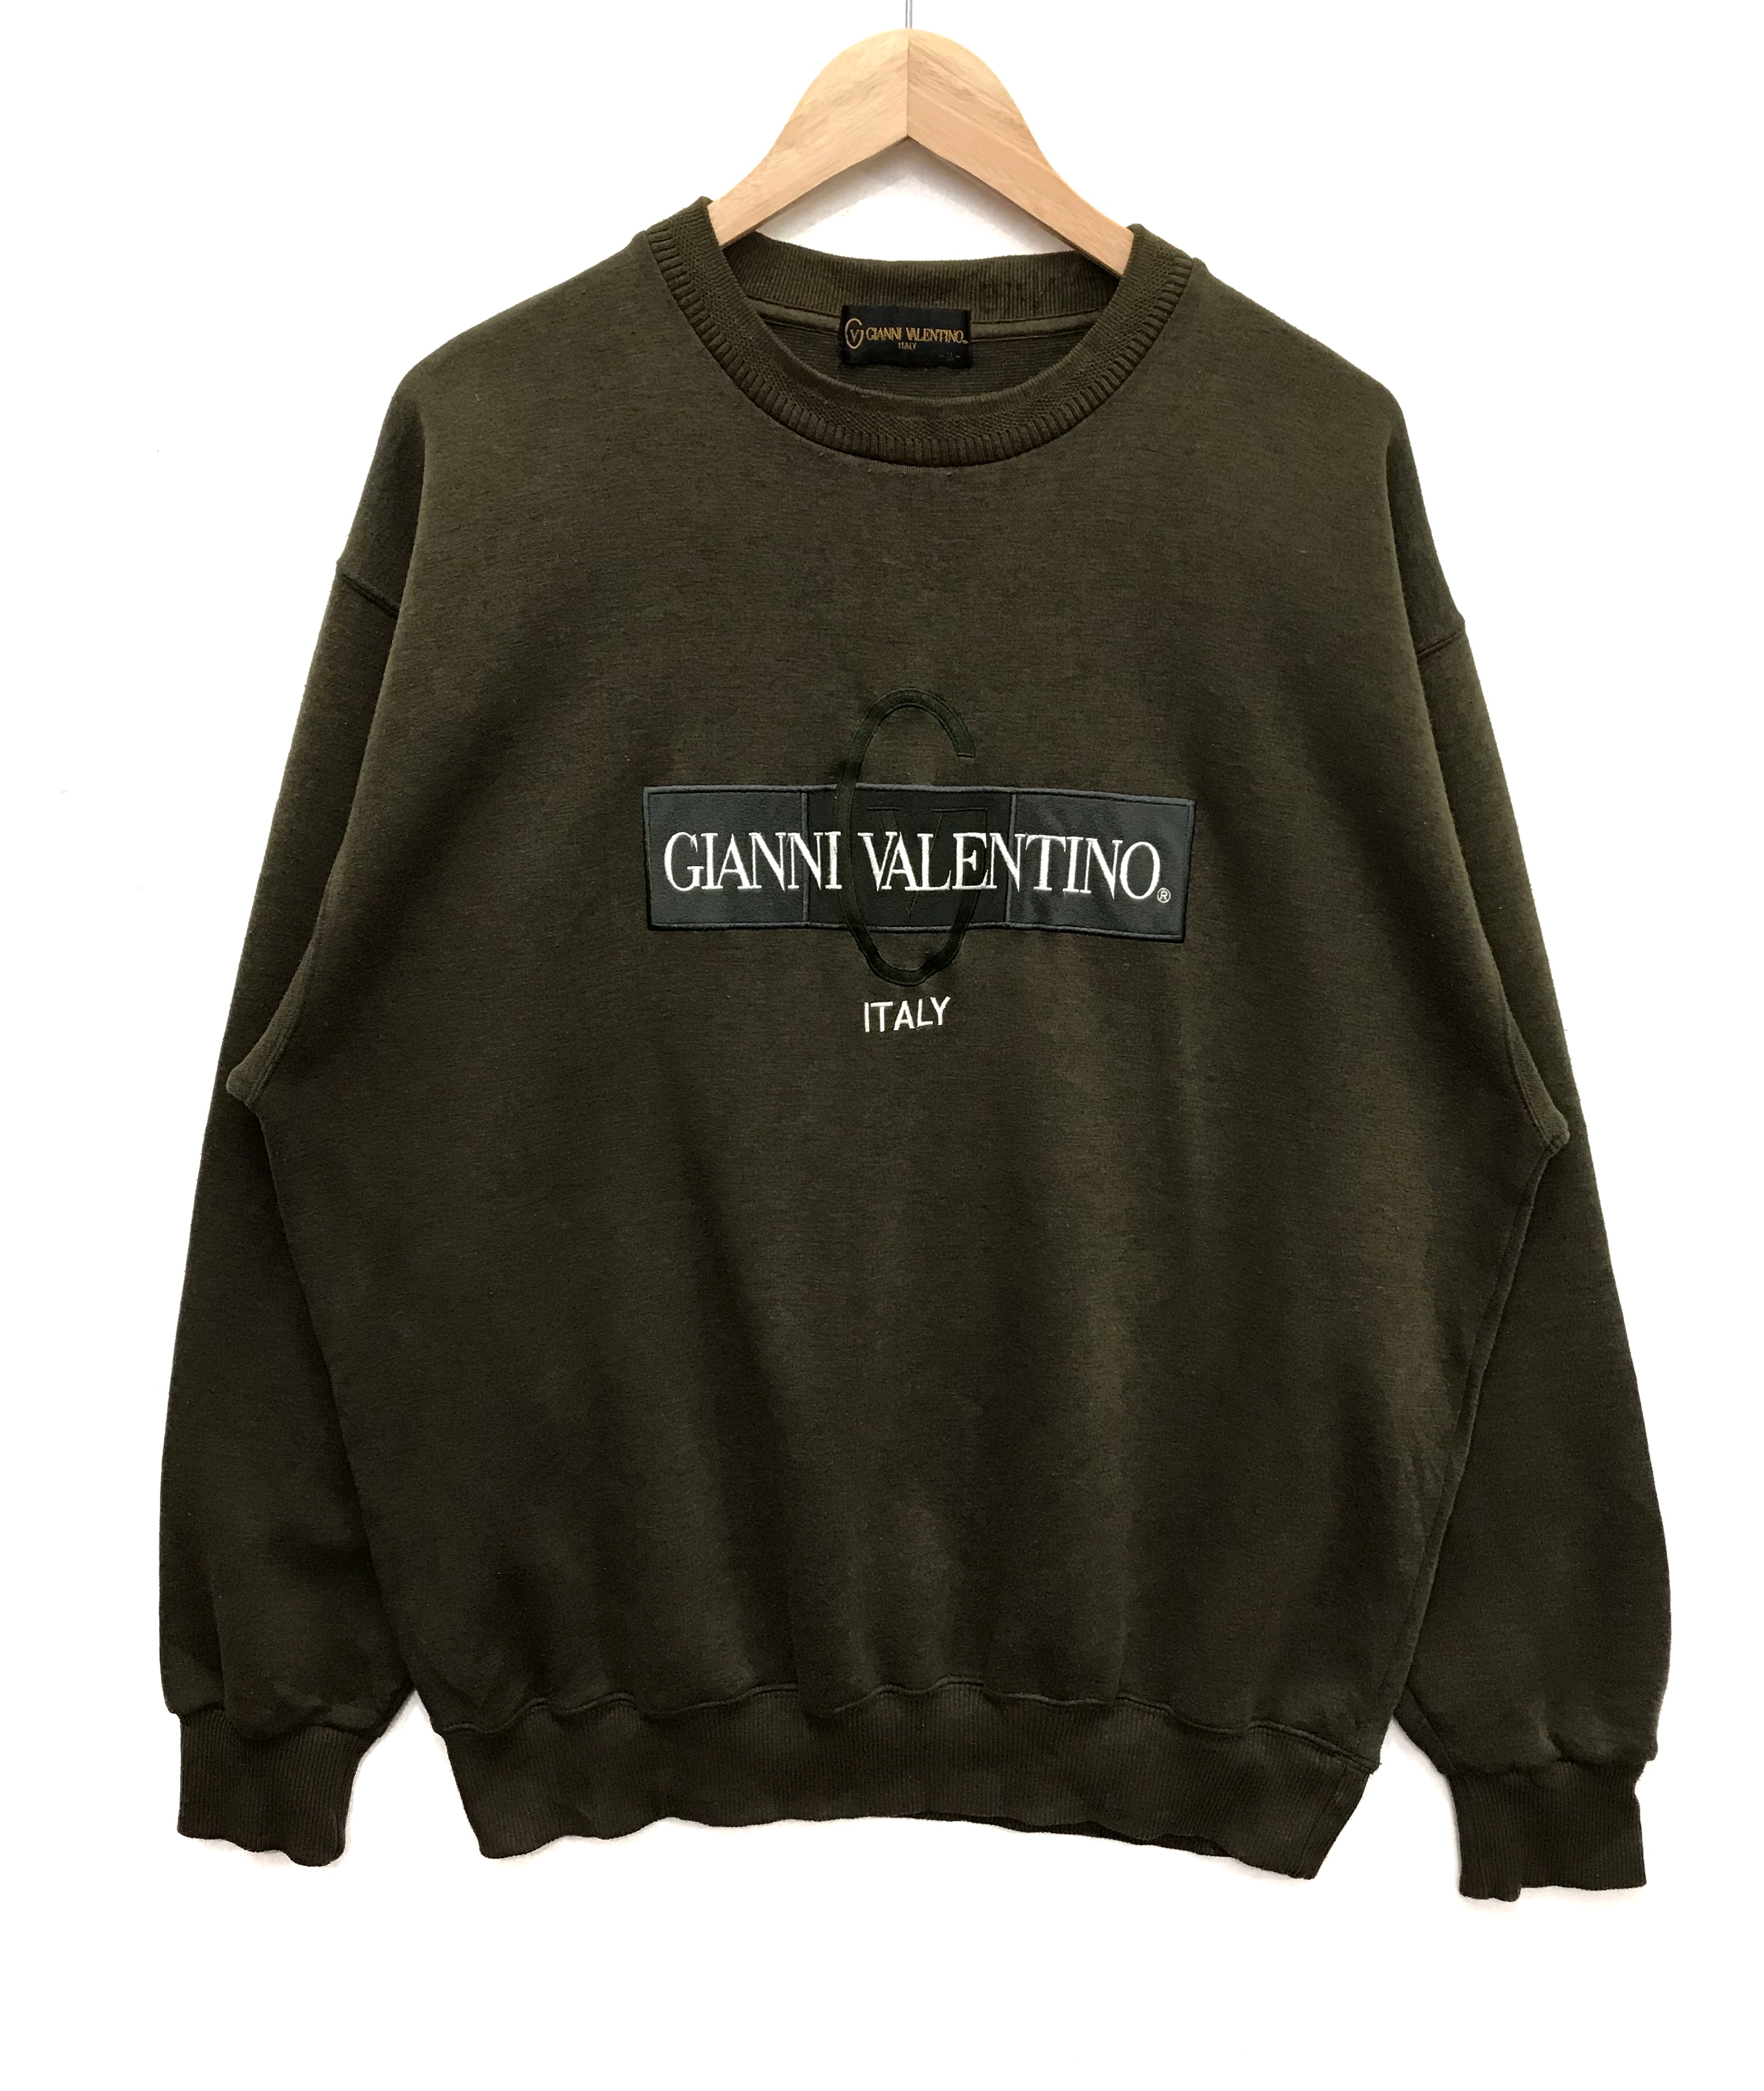 Vintage Gianni Valentino Embroidery Jumper